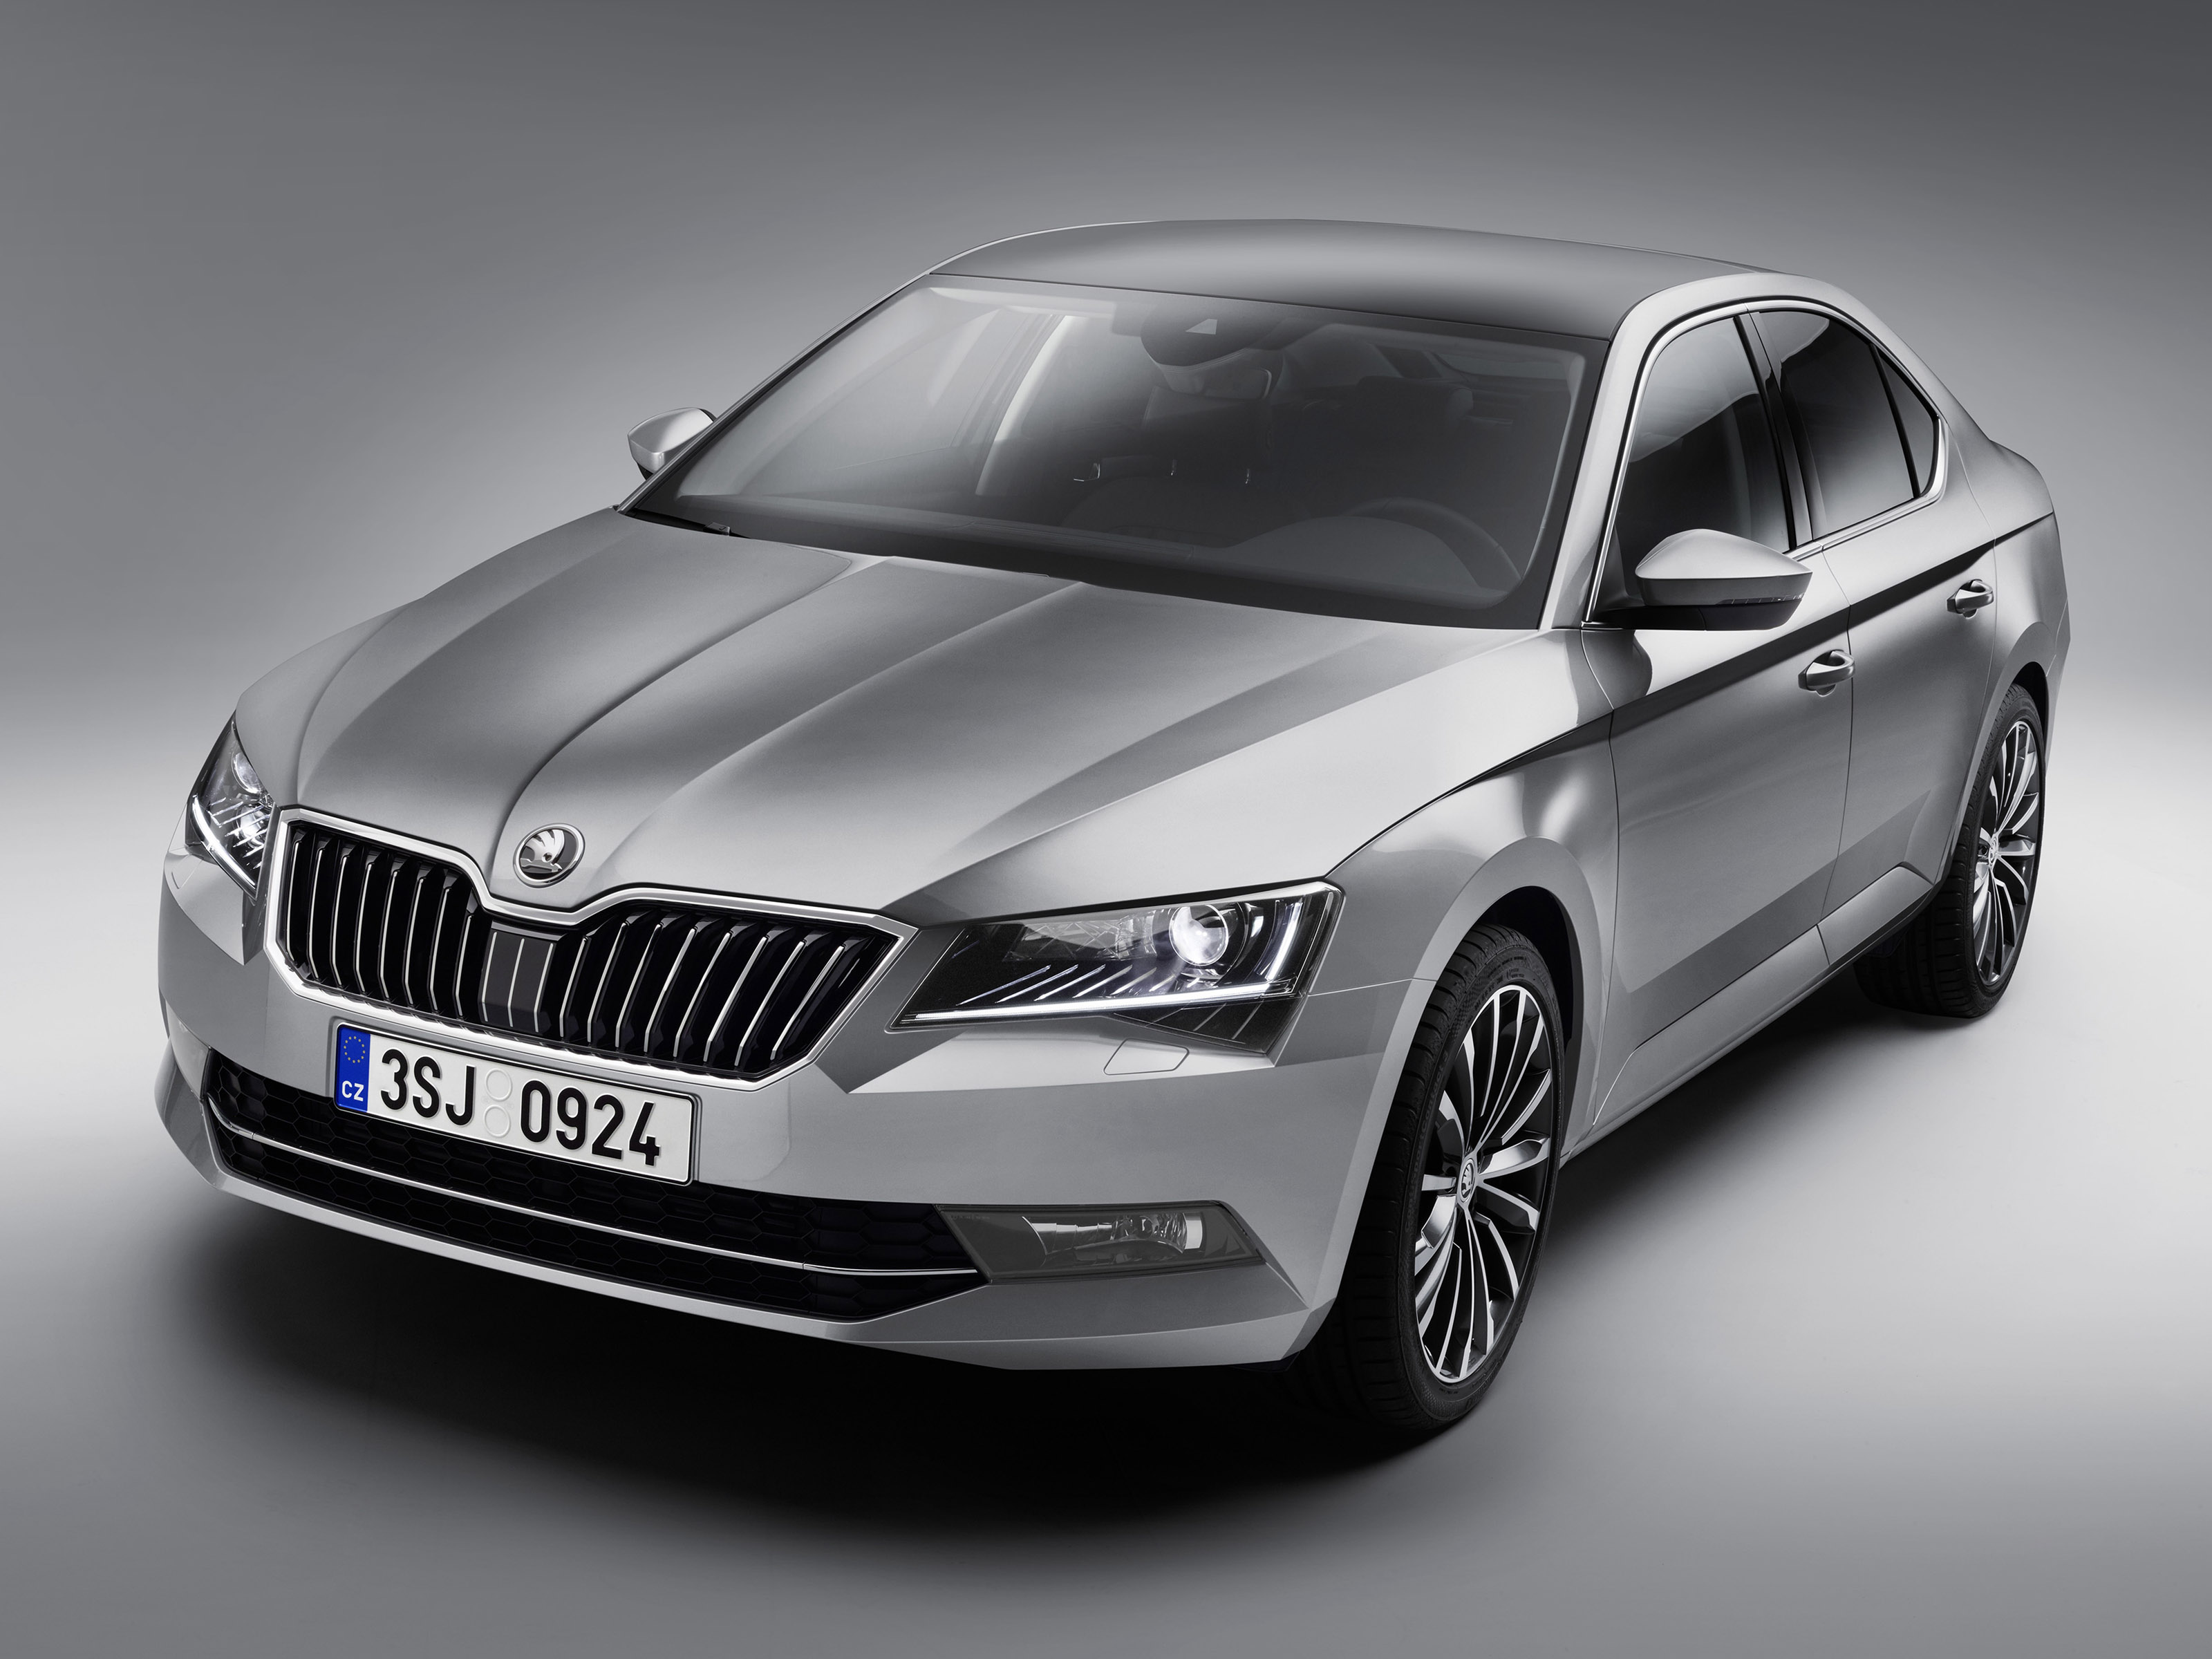 6. Skoda Superb - 147 pont